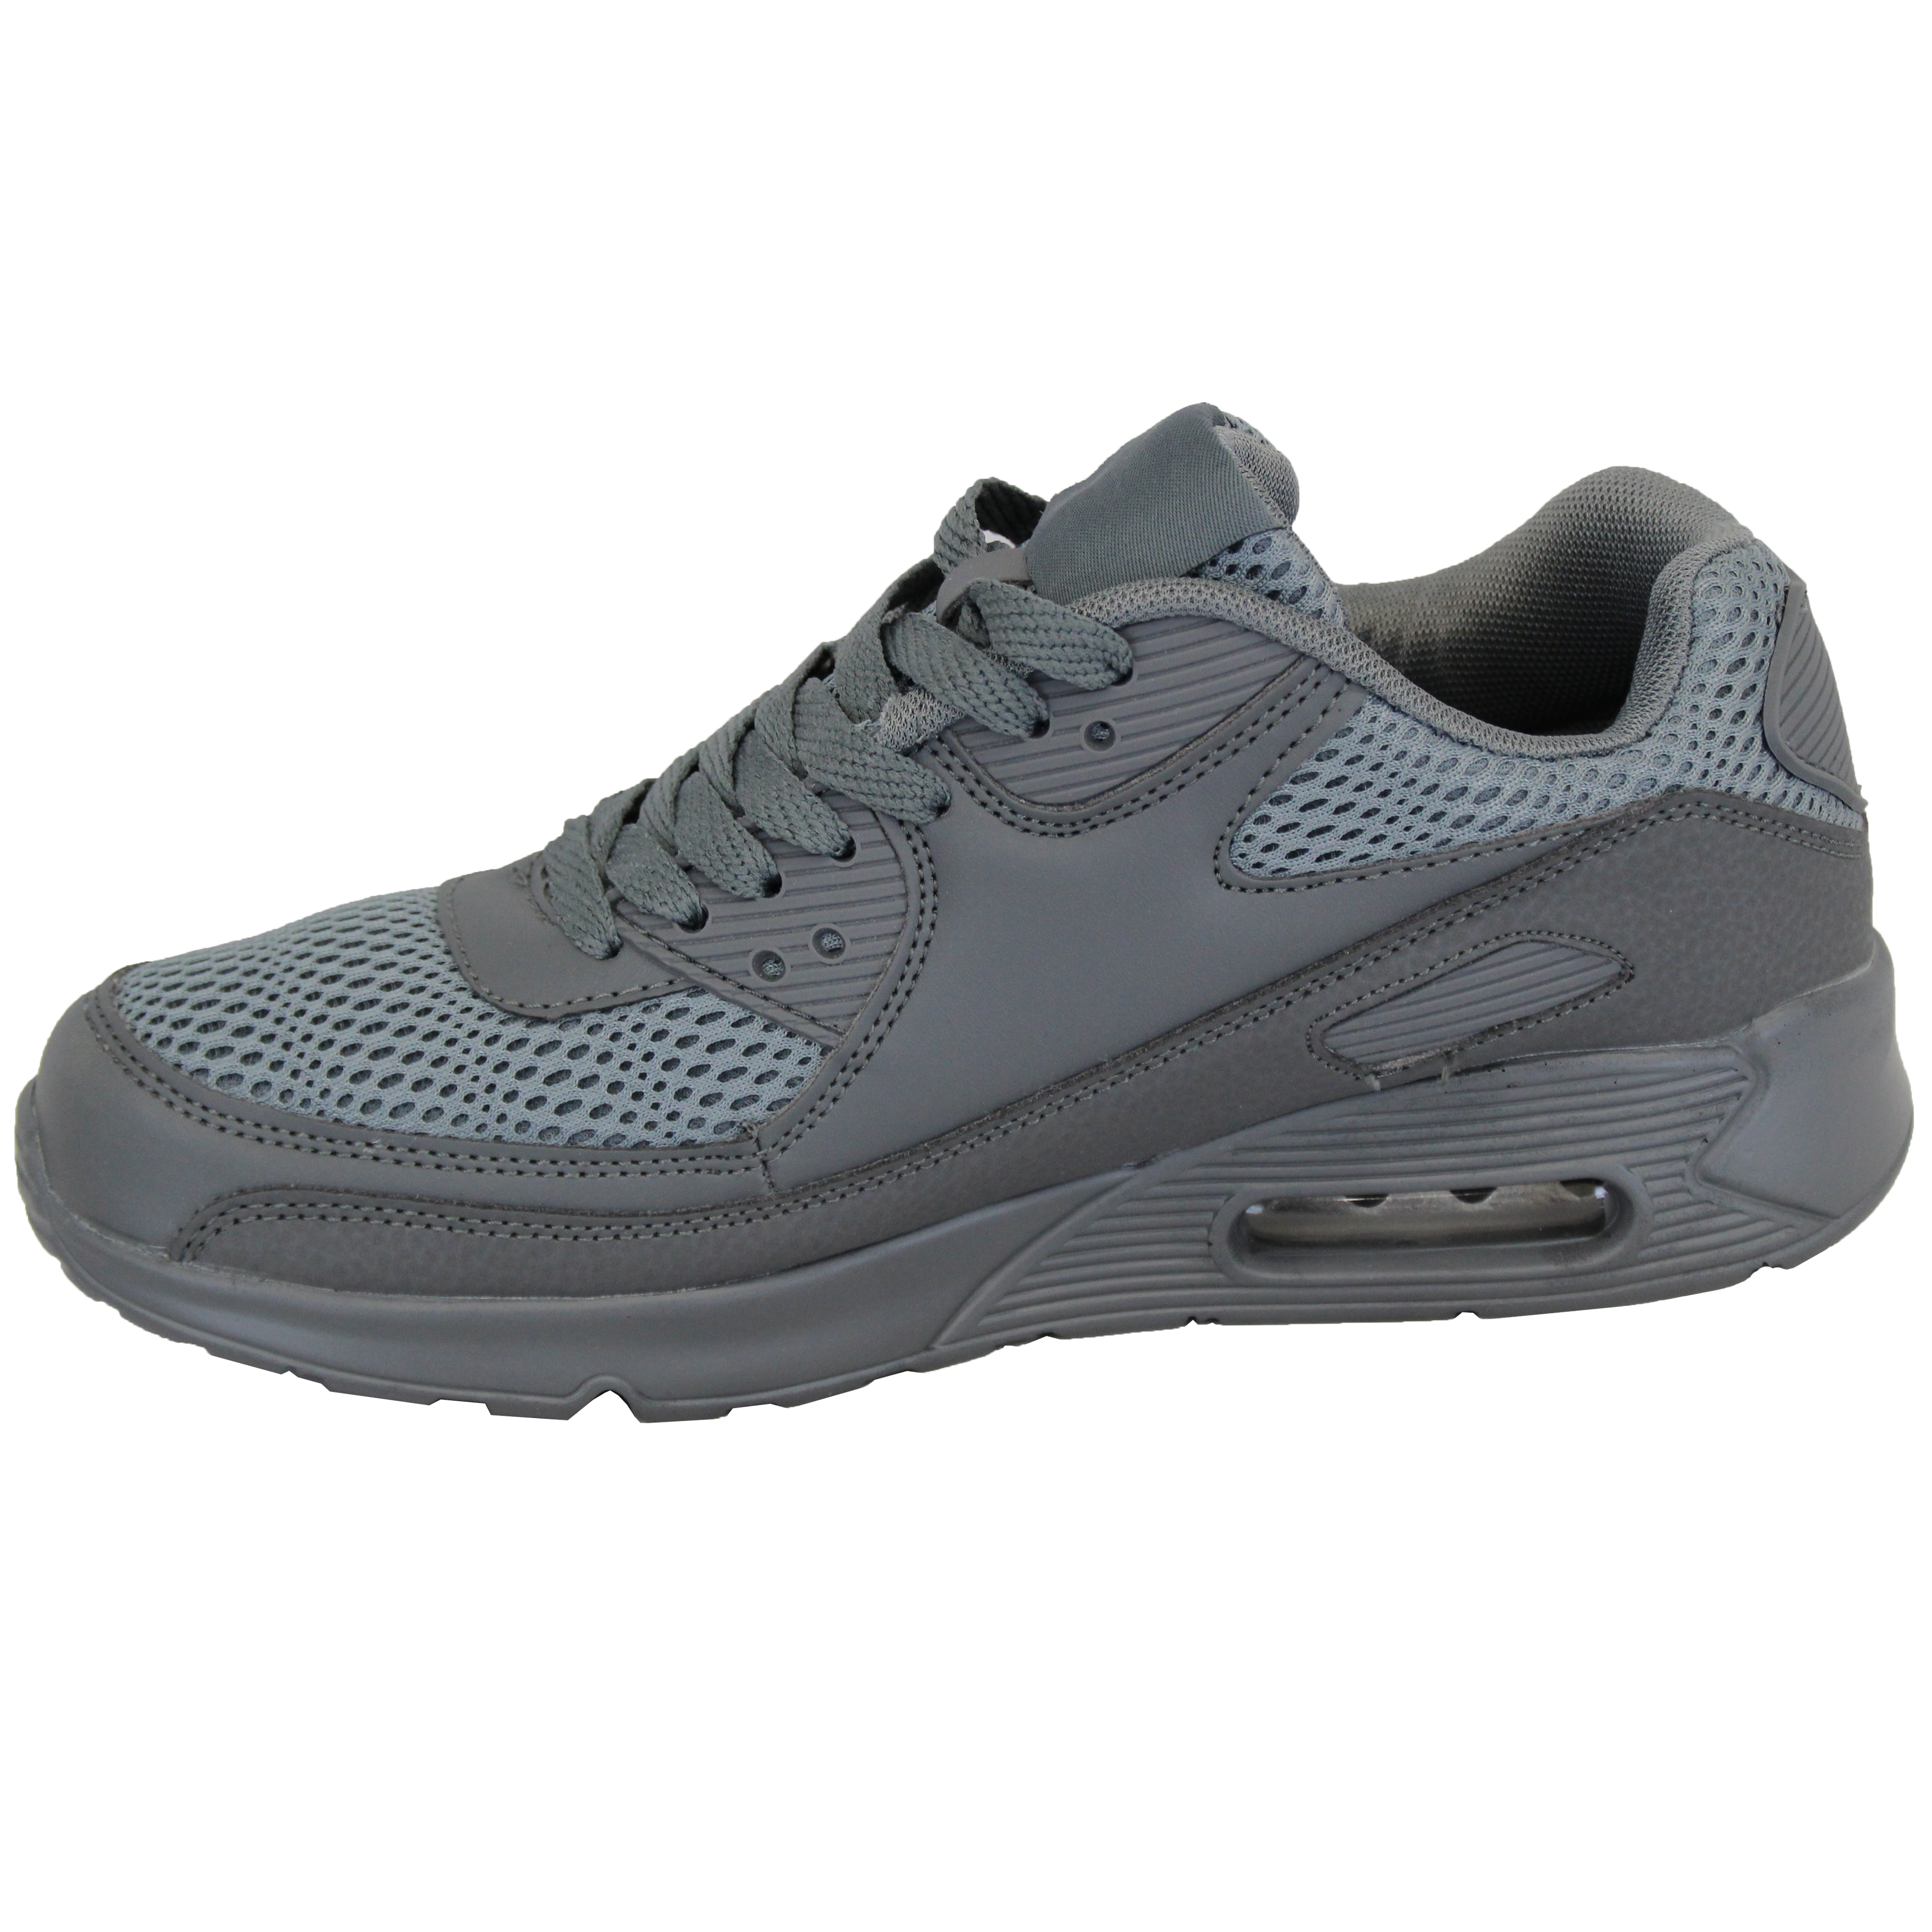 Mens-Bubble-Trainers-Lace-Up-Running-Shoes-Mesh-Jogging-Sports-Gym-Casual-New thumbnail 11